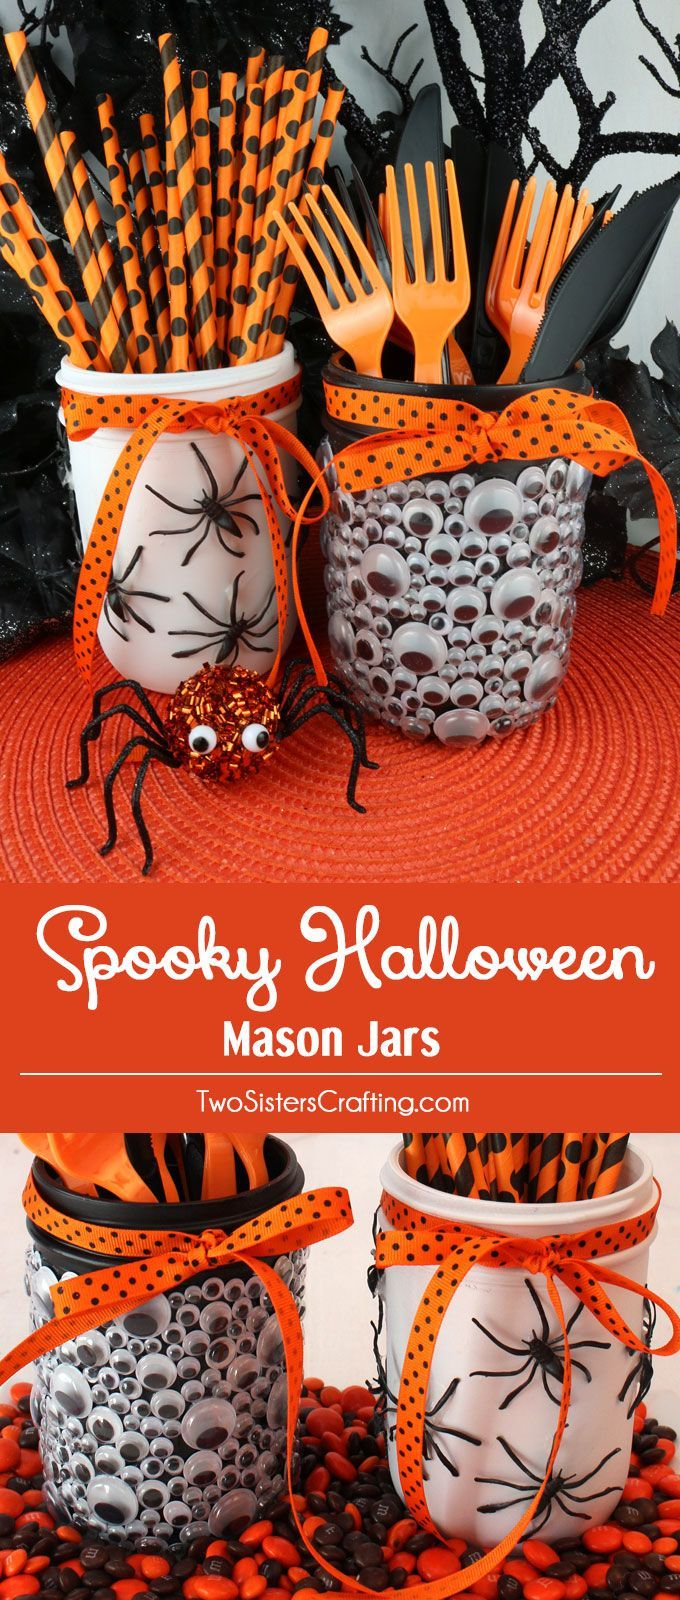 spooky halloween mason jars - Holloween Decorations